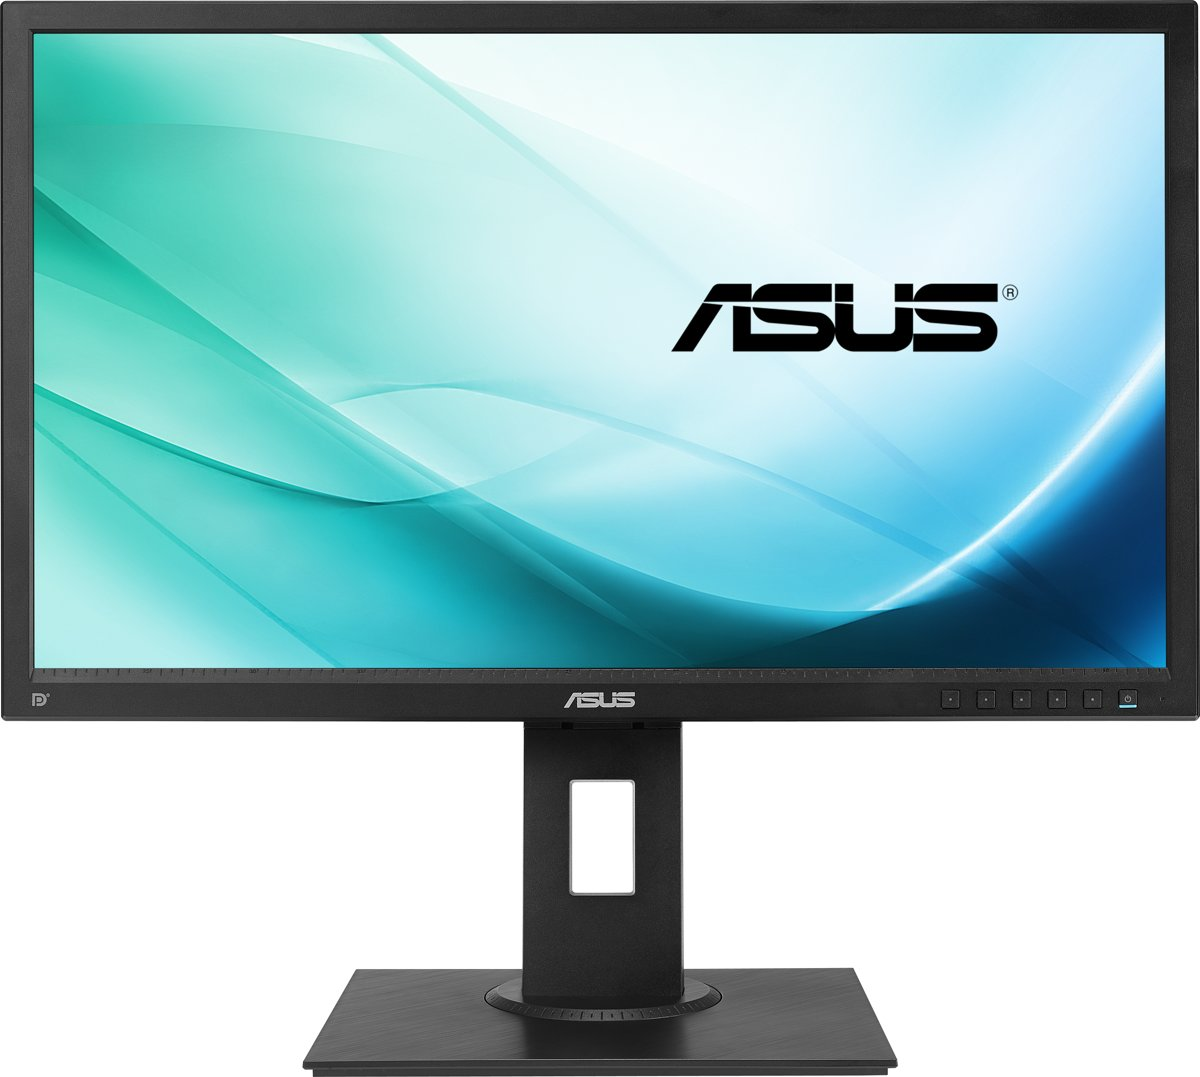 Asus BE249QLB - Full HD IPS Monitor